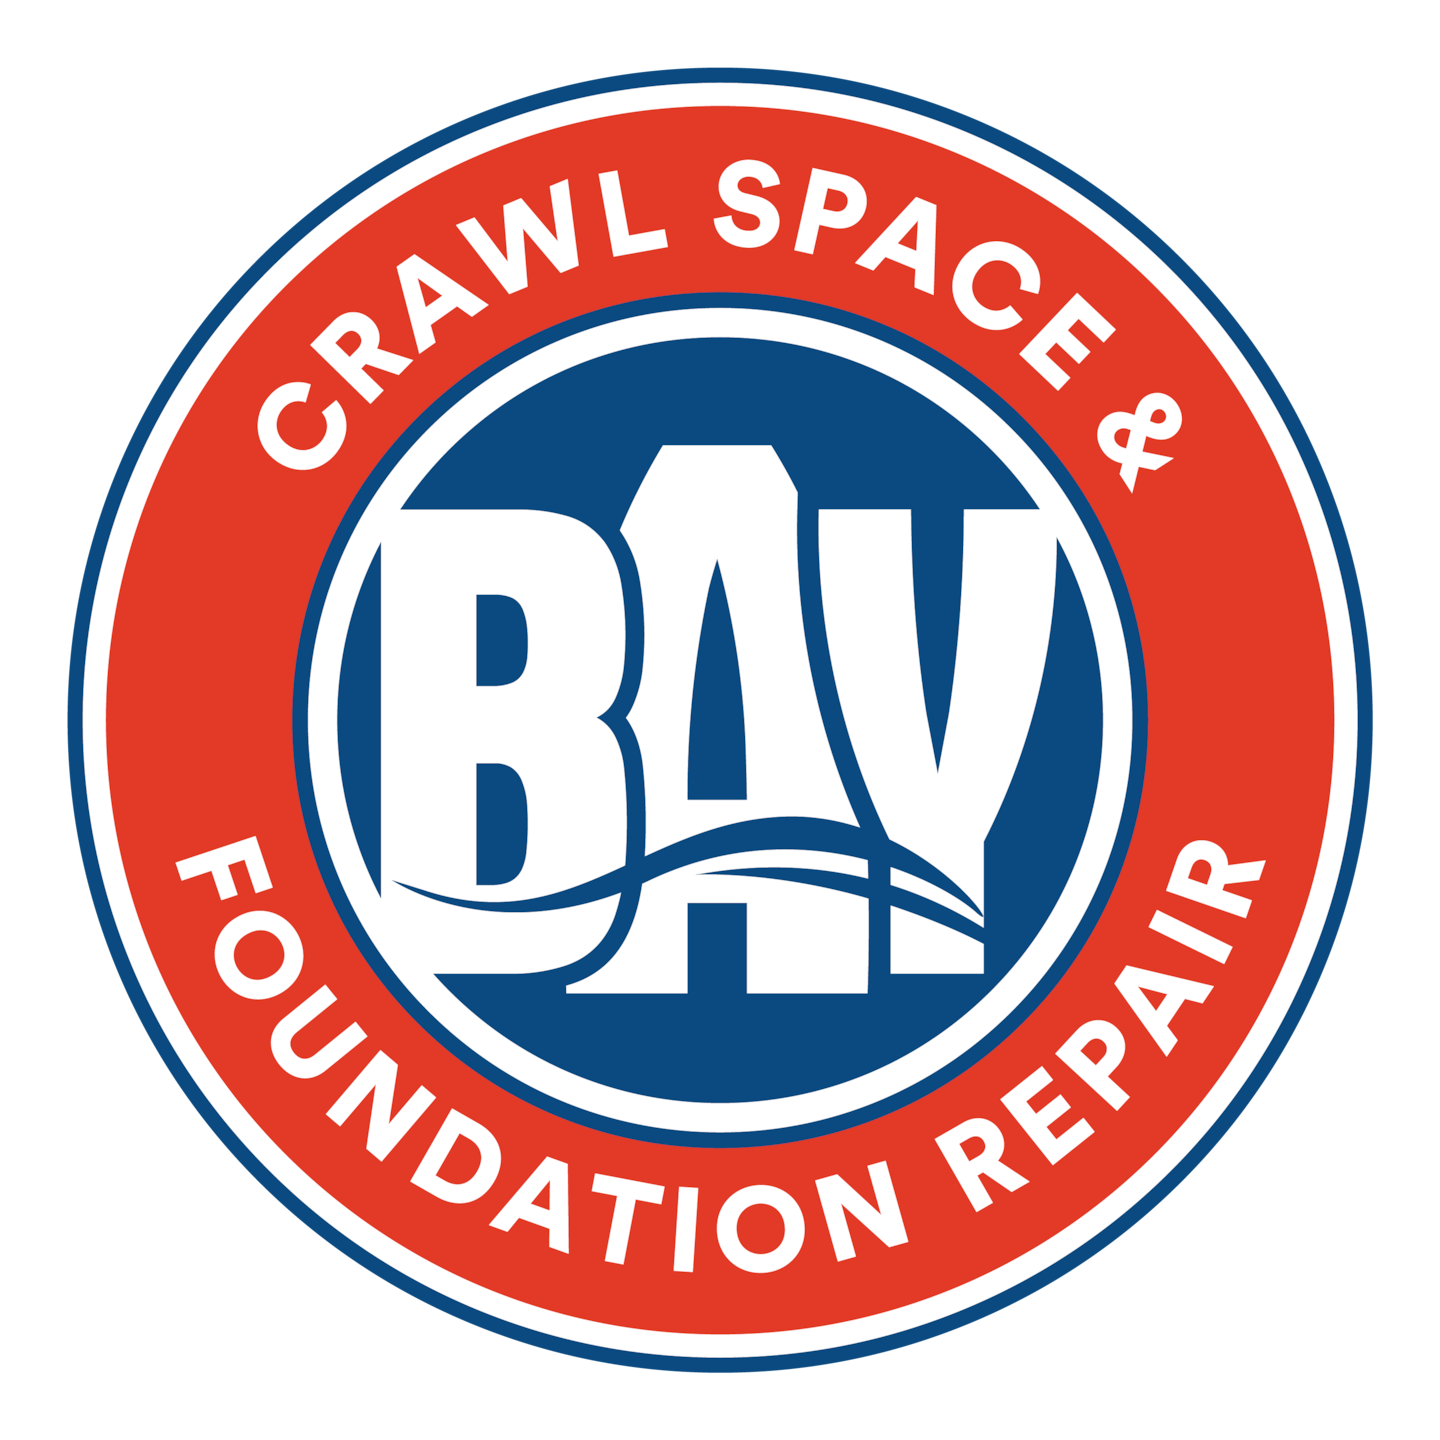 Bay Crawlspace & Foundation Repair